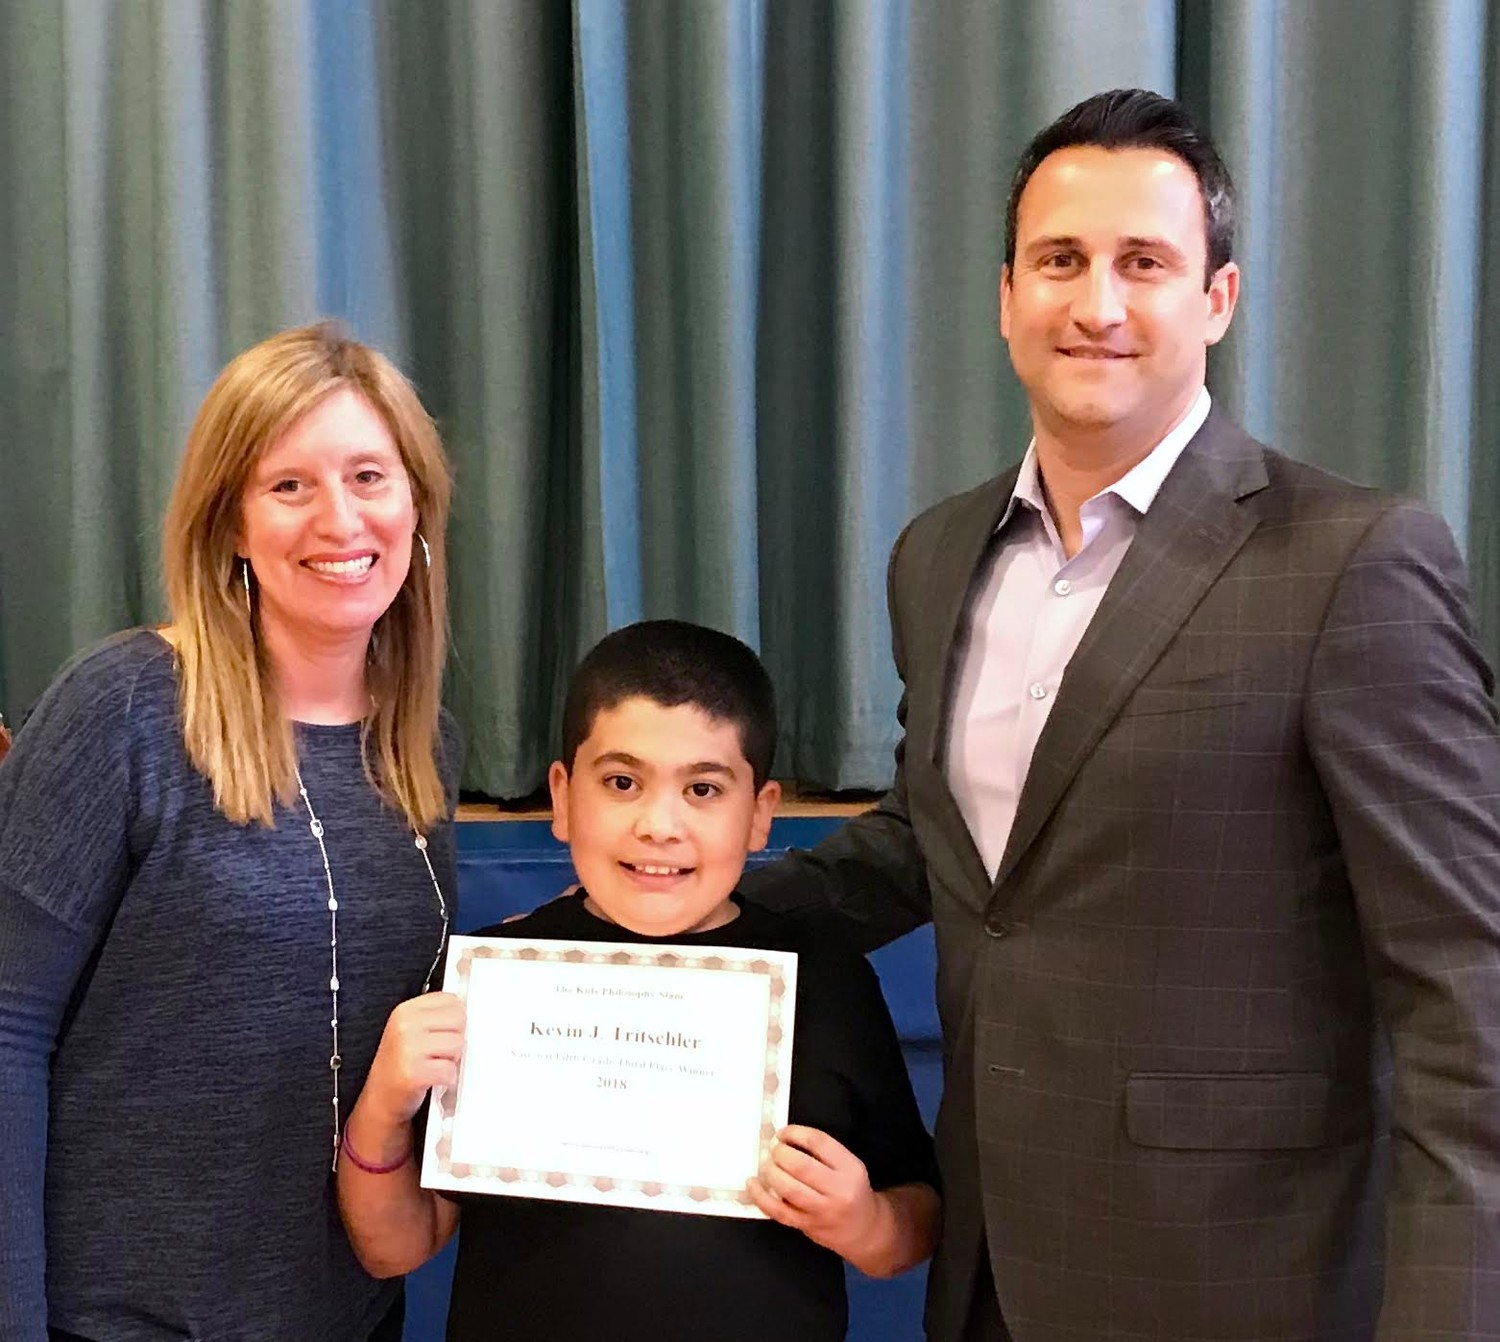 Kevin Tritschler is pictured with Challenge teacher Risa Miller, left, and Principle Rosario Iacono.